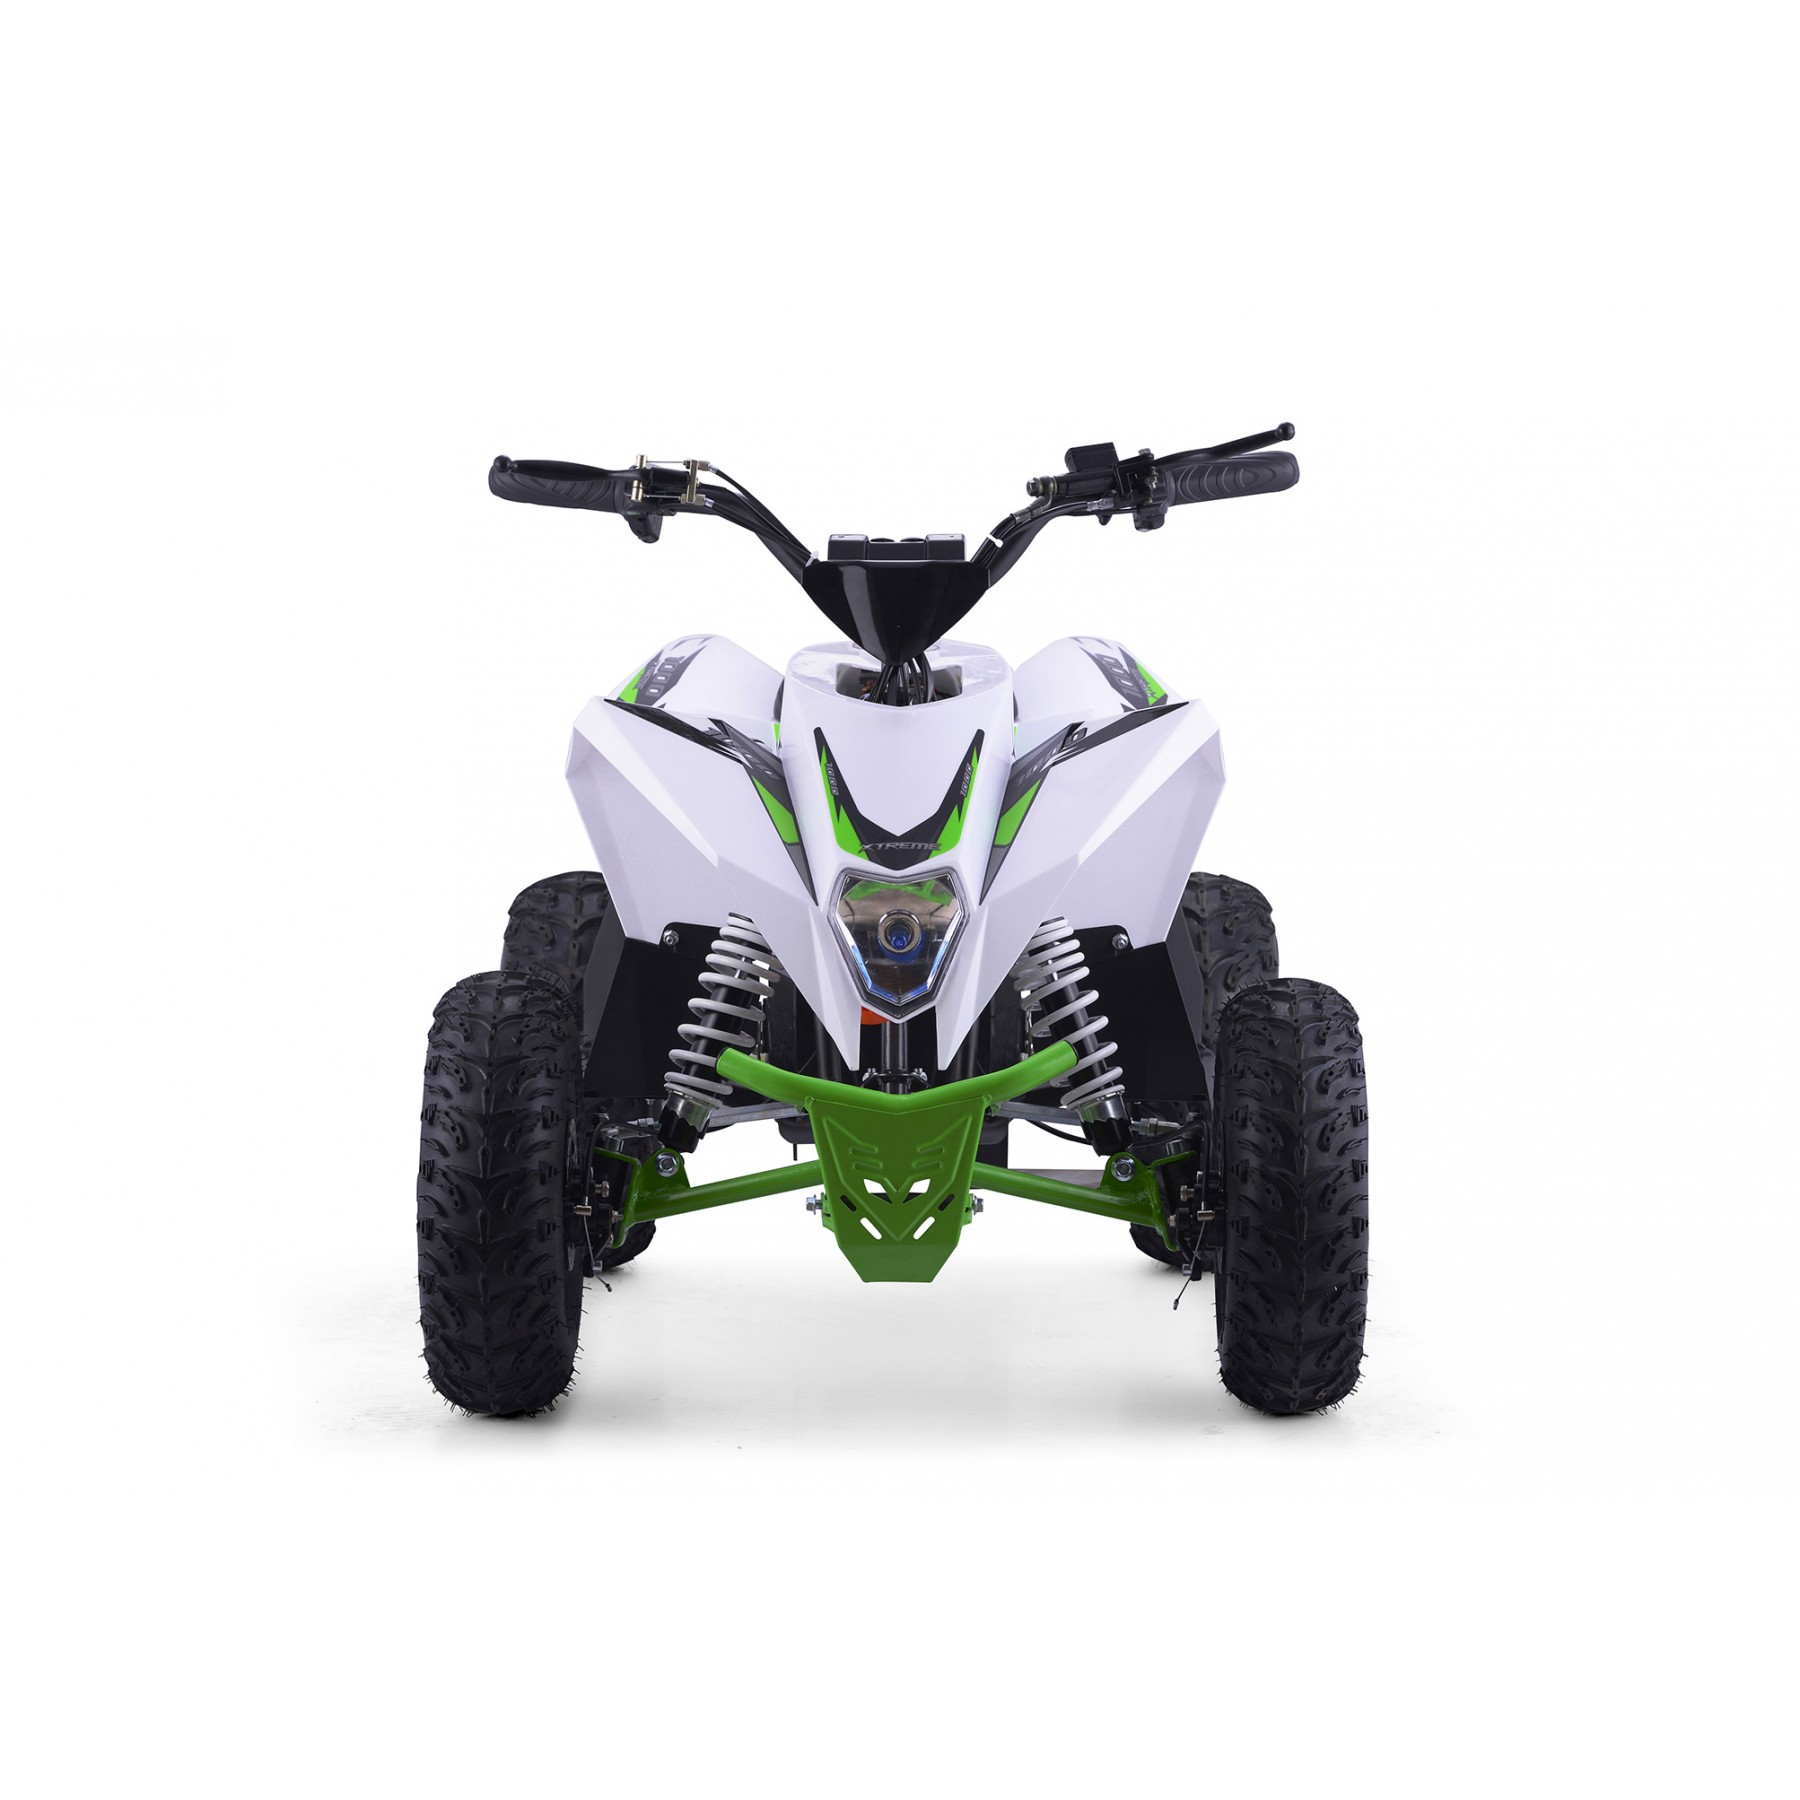 XTM RACING 1000w QUAD BIKE WHITE GREEN